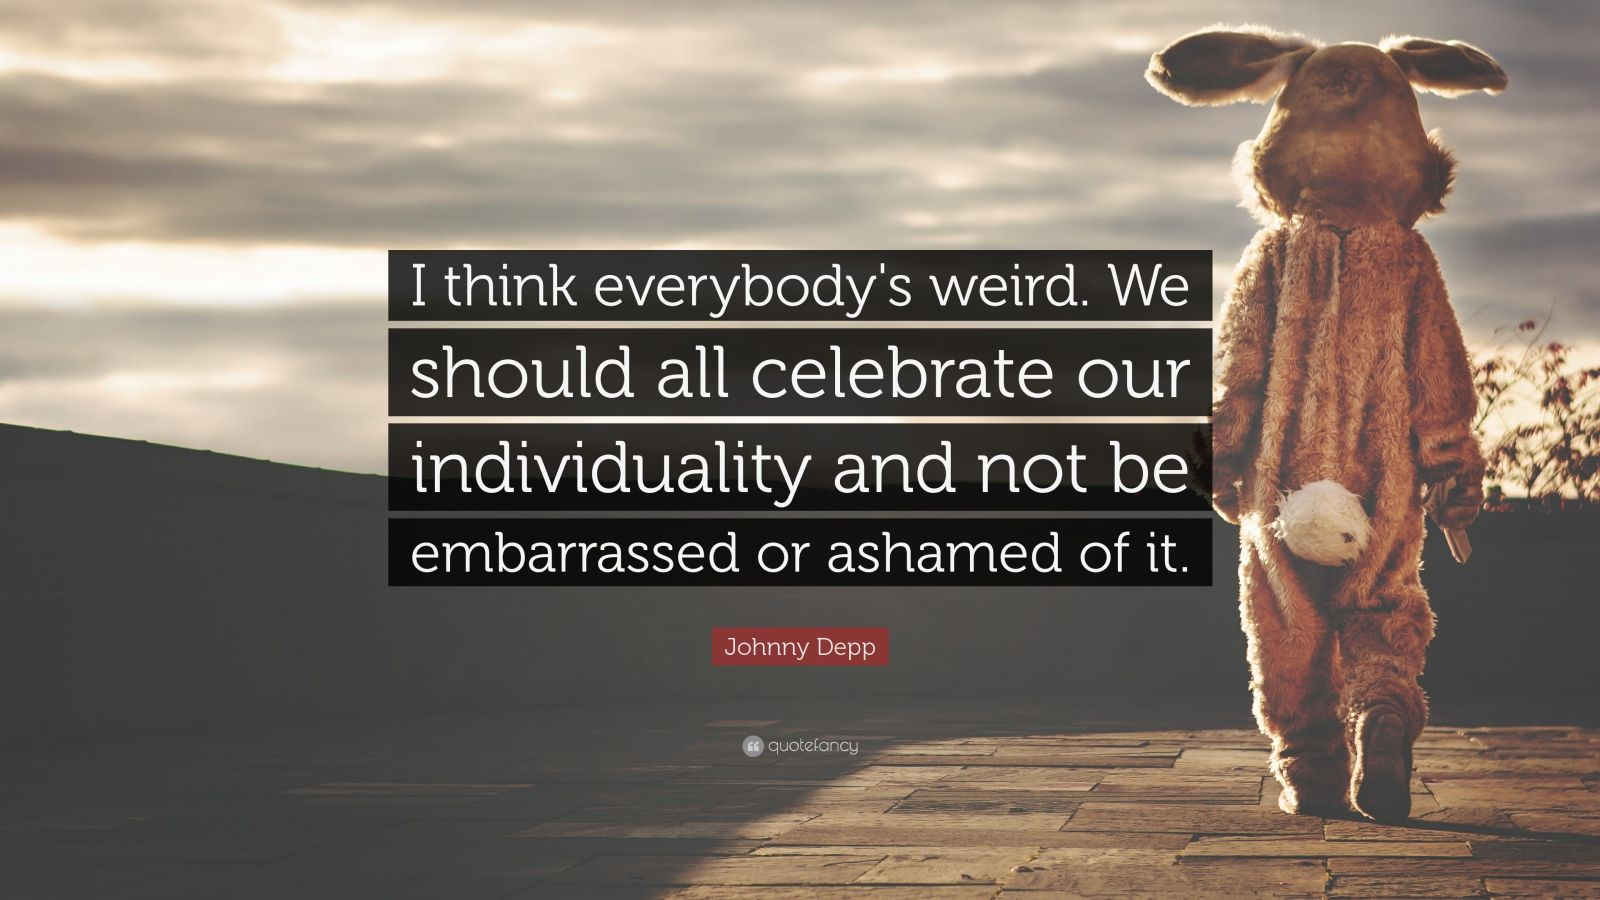 """Johnny Depp Quote: """"I think everybody's weird. We should all celebrate our individuality and not be embarrassed or ashamed of it."""""""